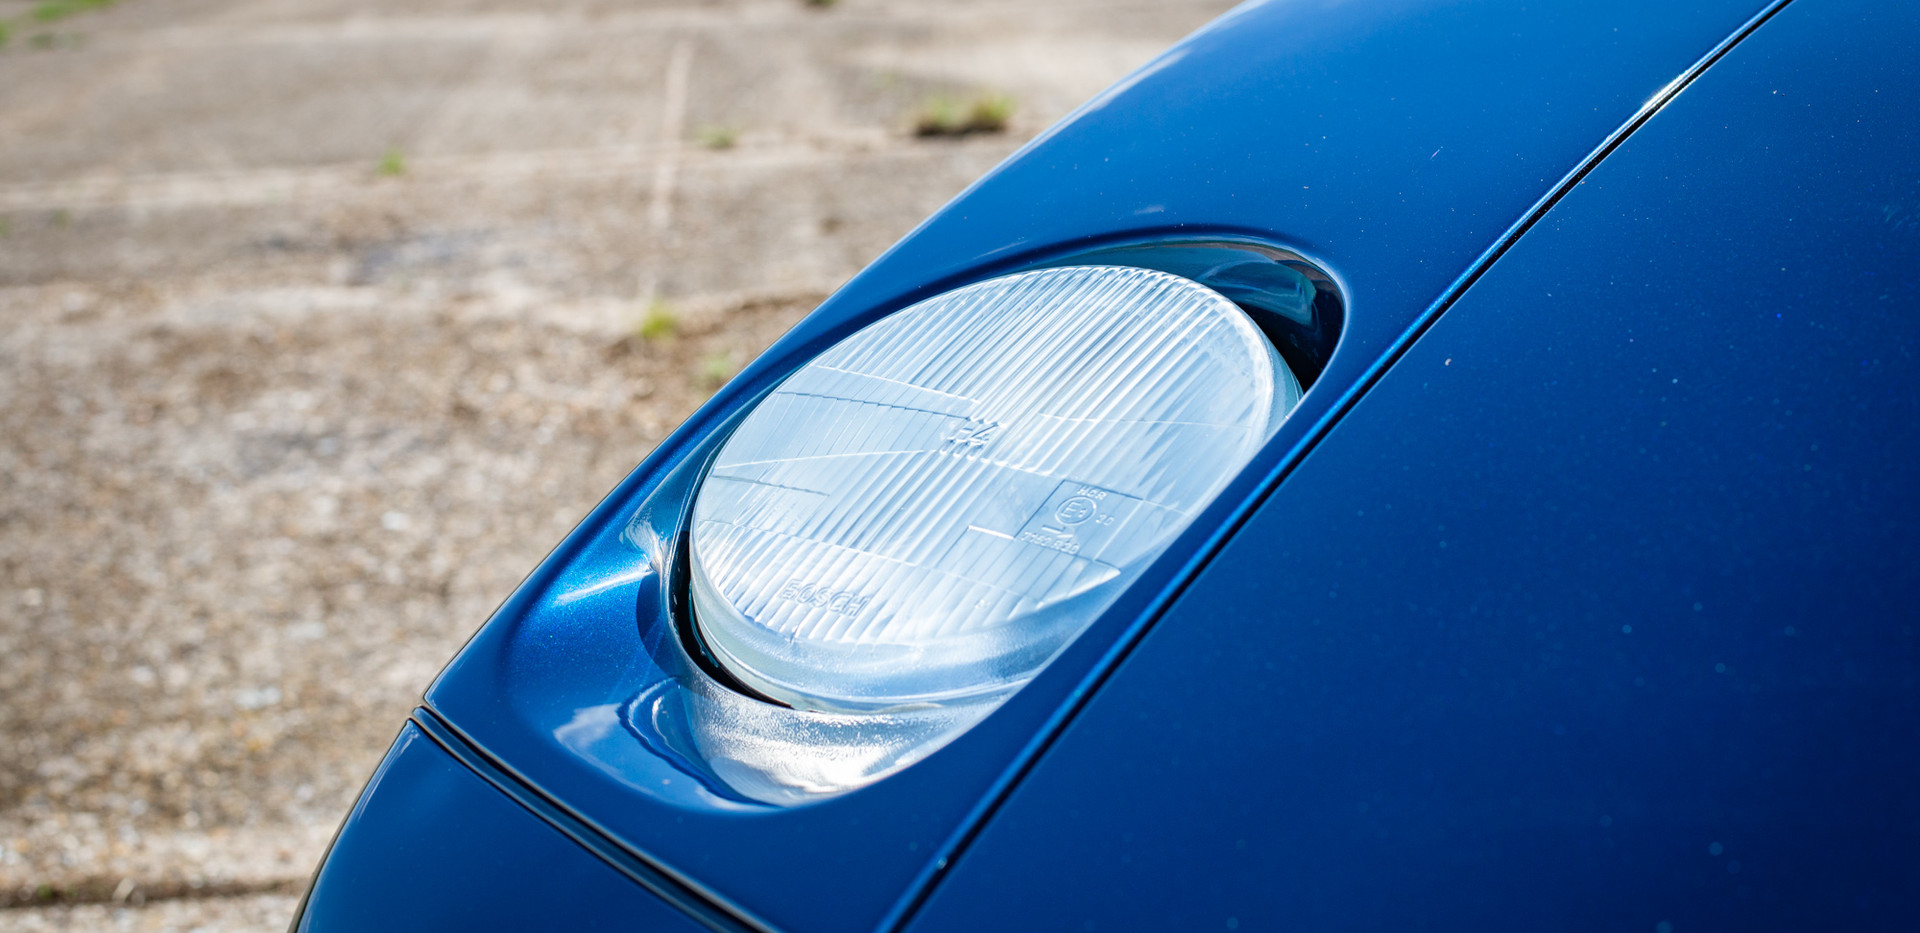 Porsche_928_ForSale Uk London-25.jpg